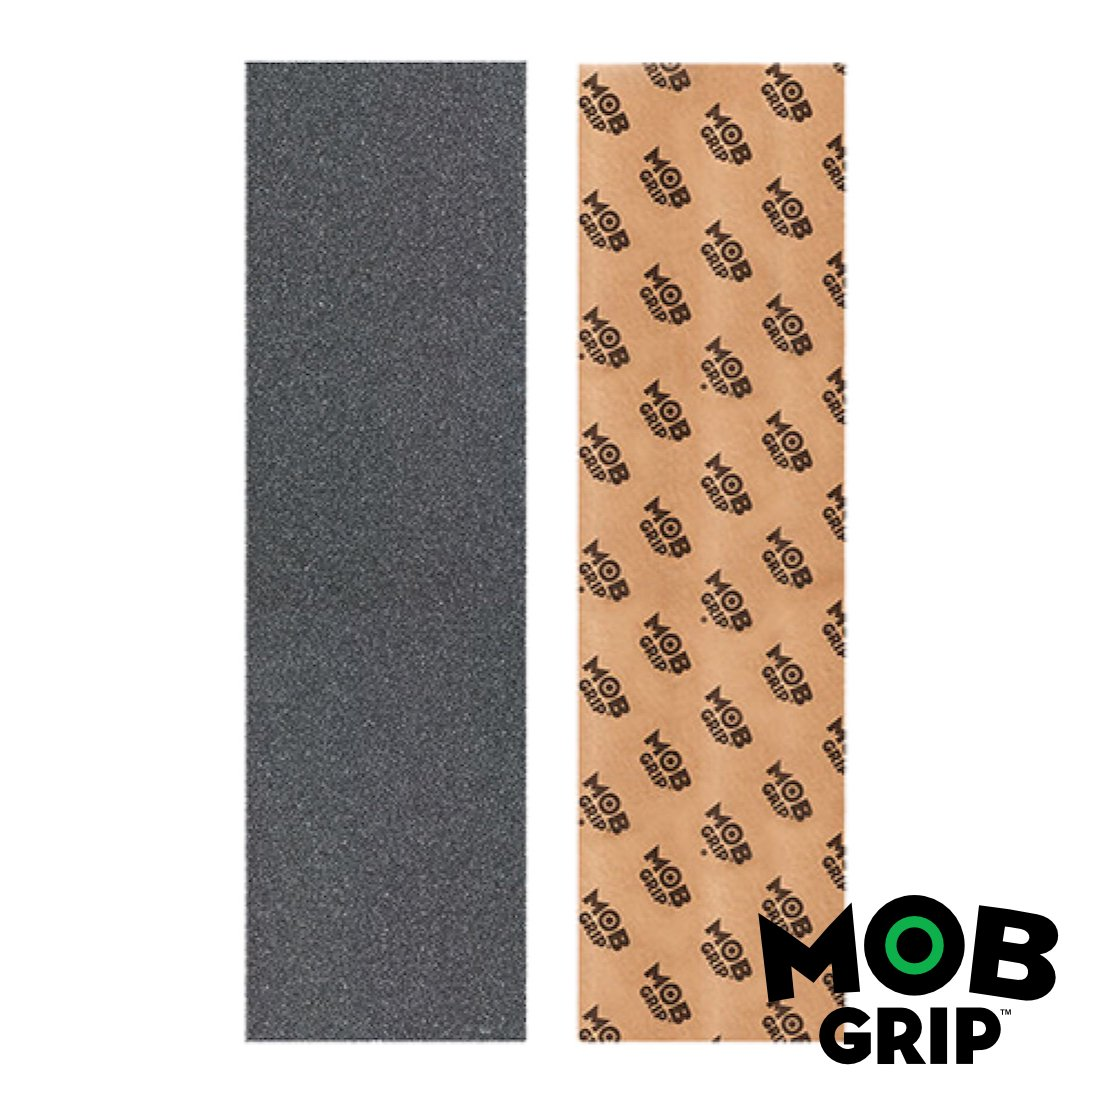 【Mob Grip】Standard Grip Tape